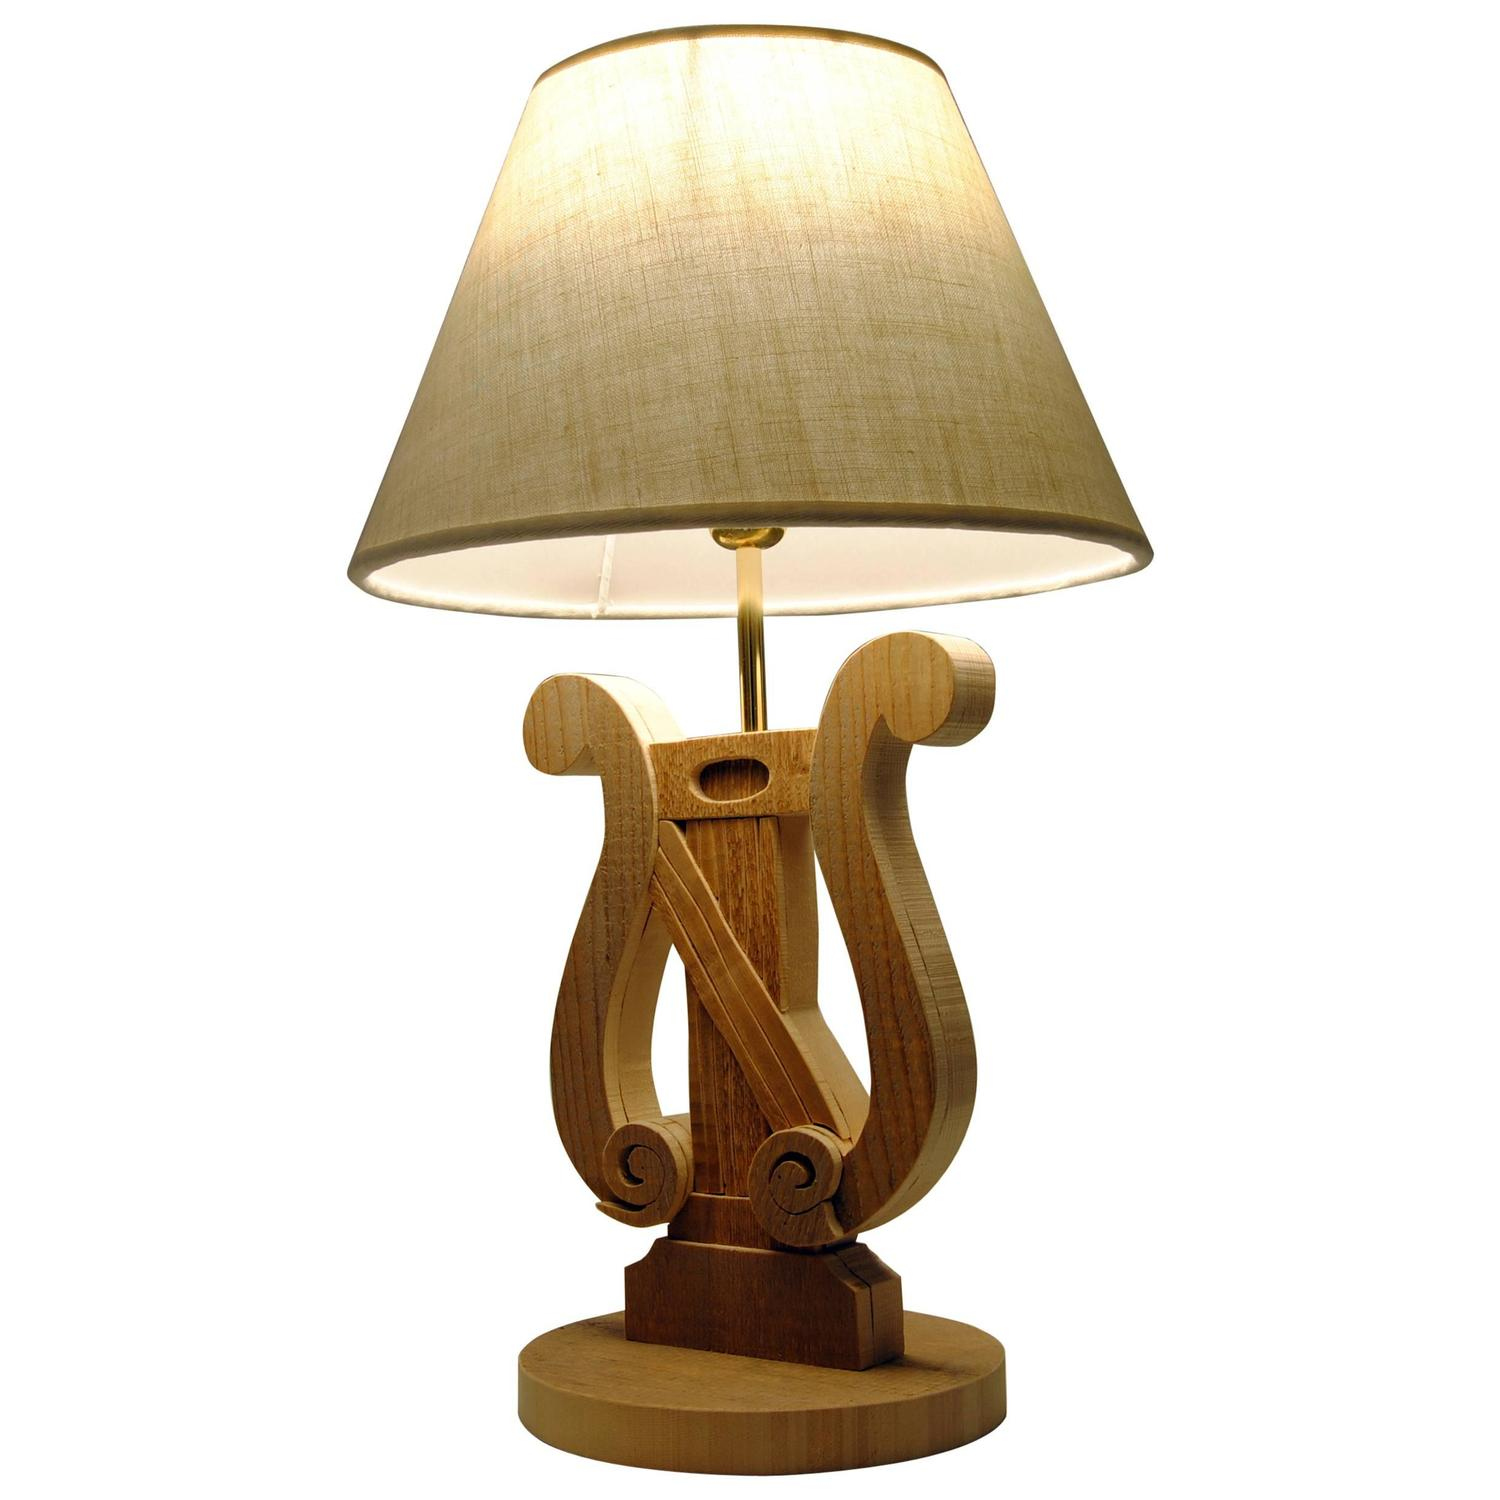 musical wood table lamp by michelangeli italy for sale at 1stdibs. Black Bedroom Furniture Sets. Home Design Ideas